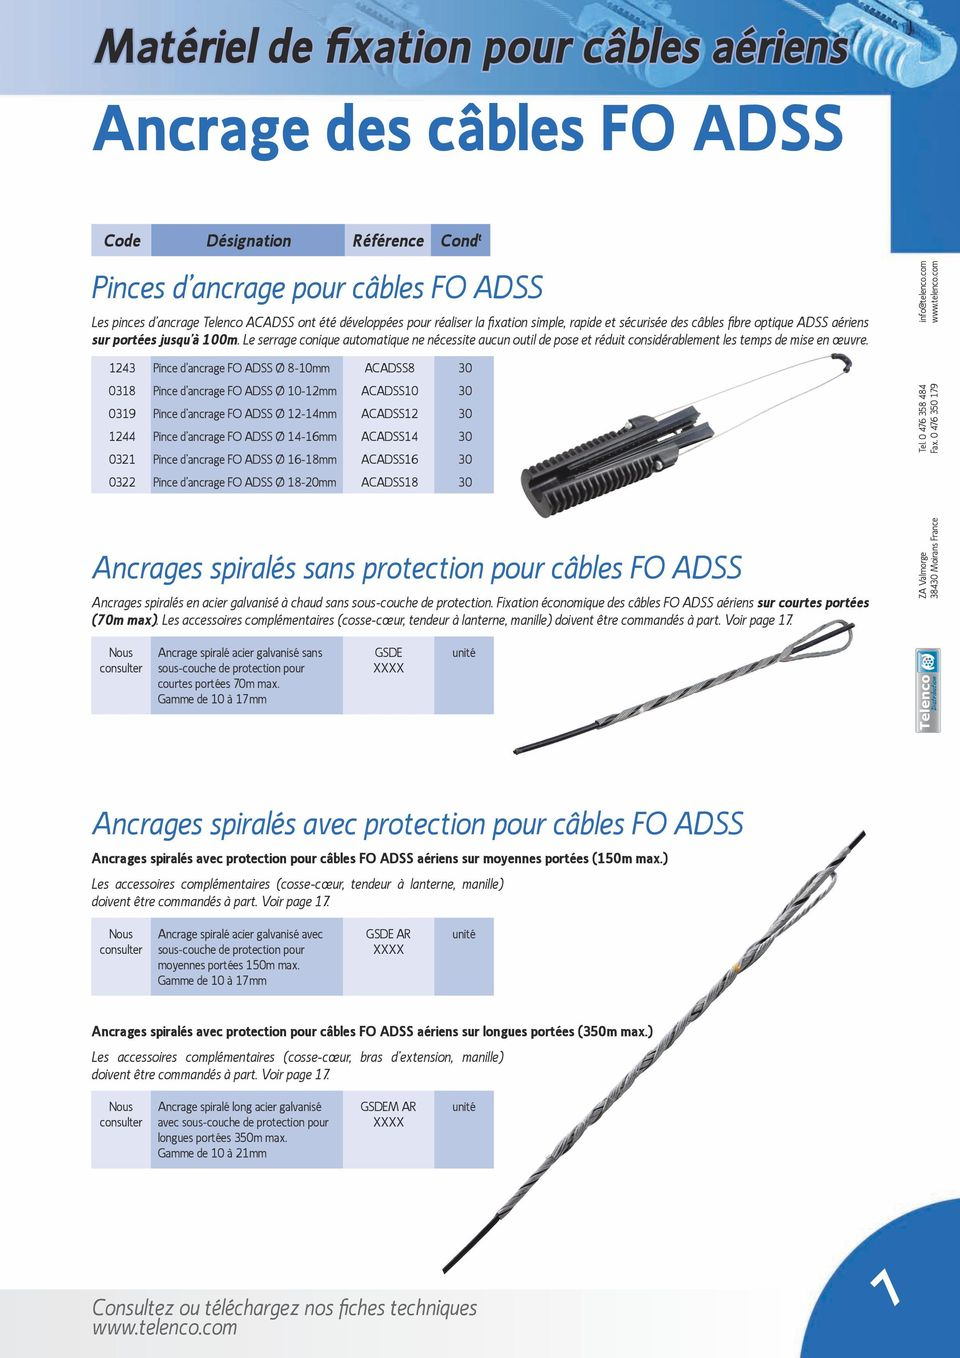 1243 Pince d ancrage FO ADSS Ø 8-10mm ACADSS8 30 0318 Pince d ancrage FO ADSS Ø 10-12mm ACADSS10 30 0319 Pince d ancrage FO ADSS Ø 12-14mm ACADSS12 30 1244 Pince d ancrage FO ADSS Ø 14-16mm ACADSS14